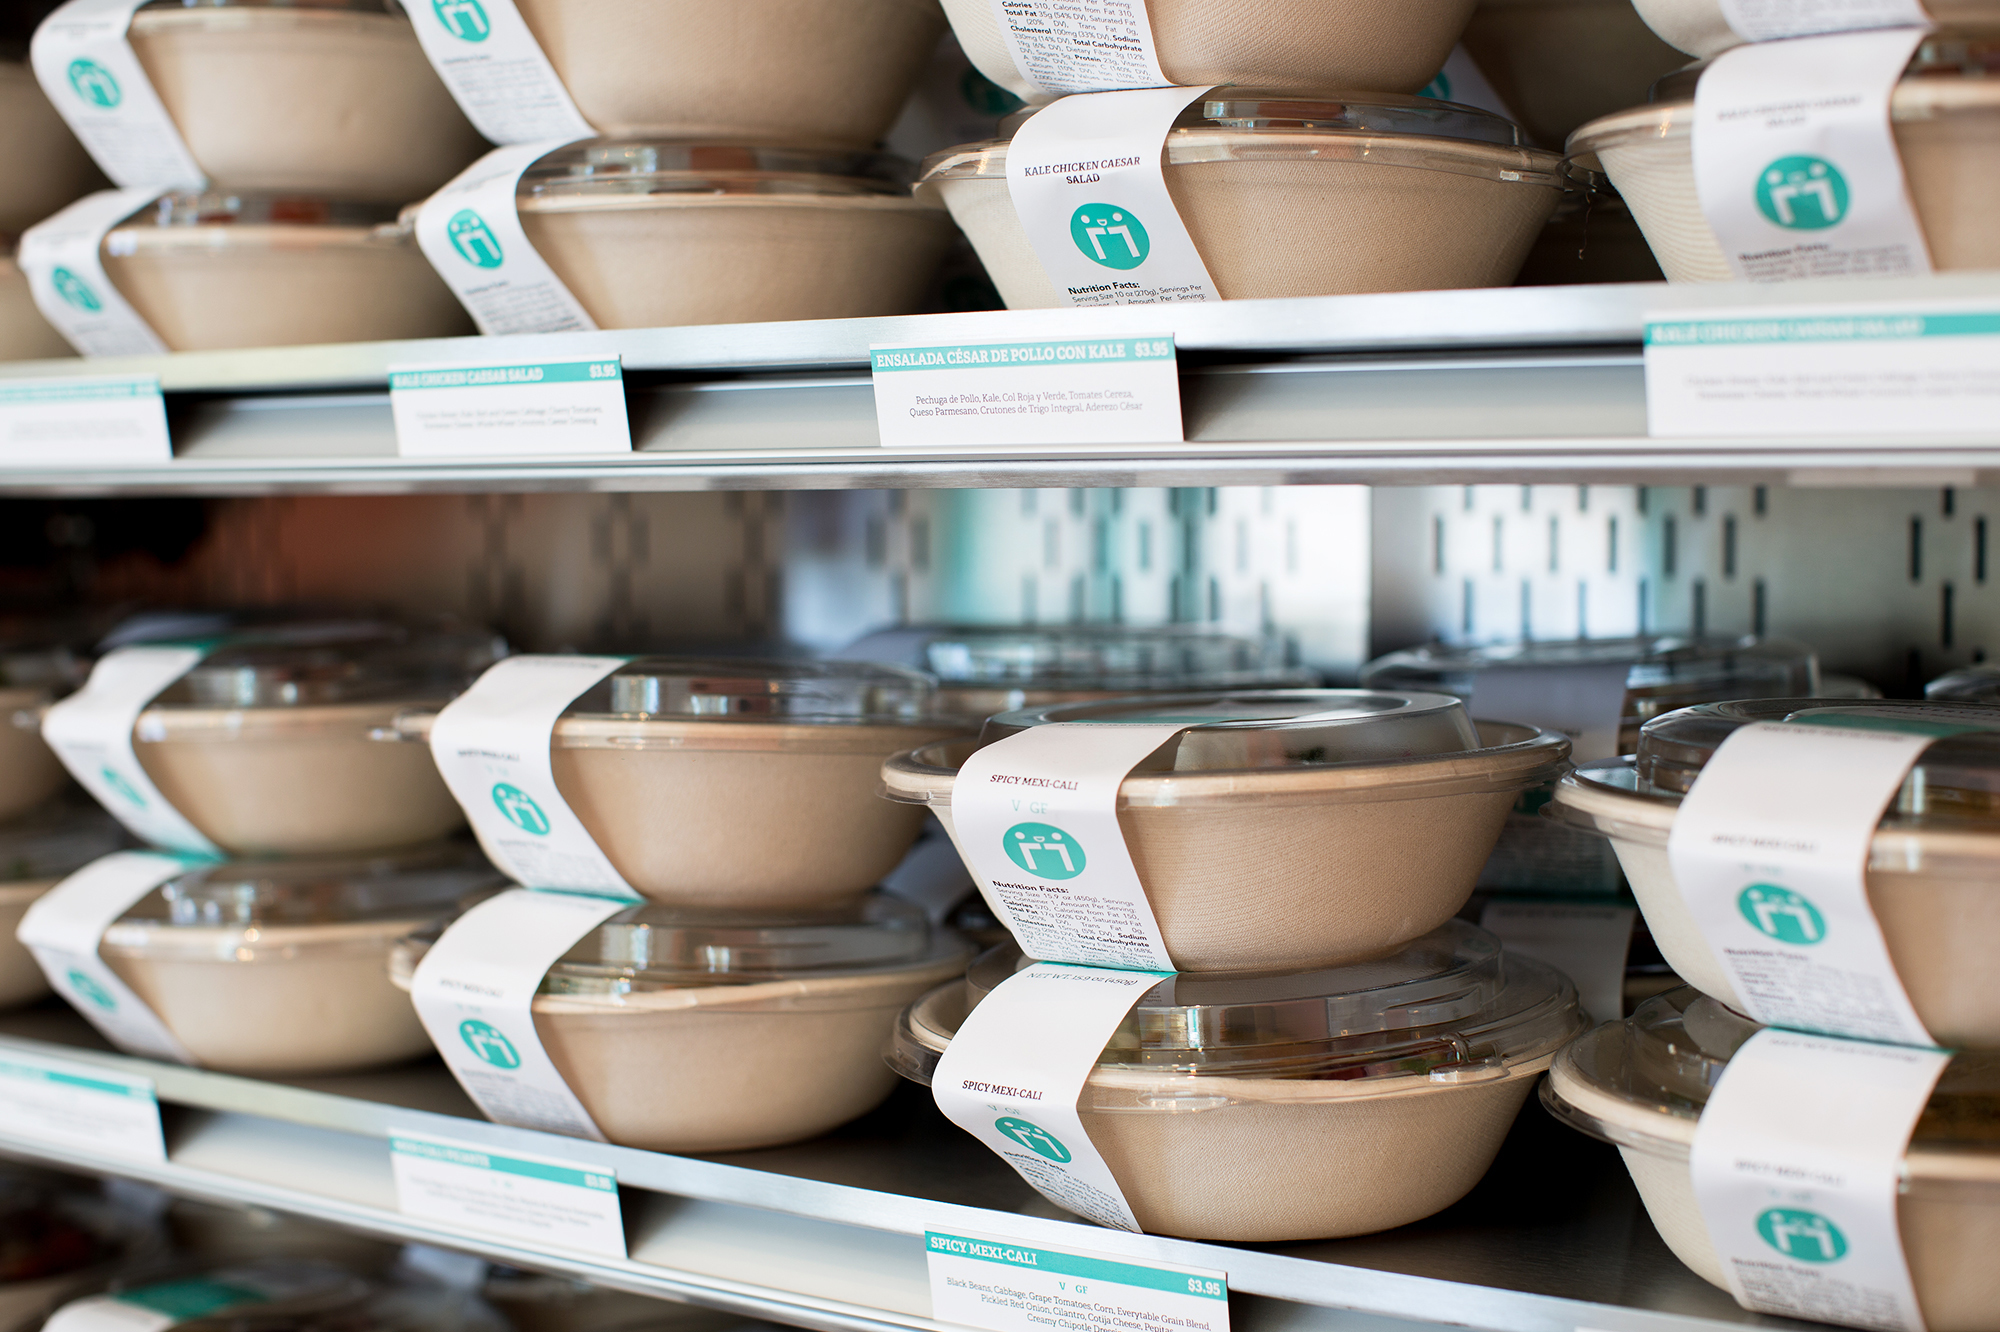 Everytable's meals are prepared in a central kitchen, then packaged in to-go containers. Customers can heat them and eat them at the restaurant or take them home for later.